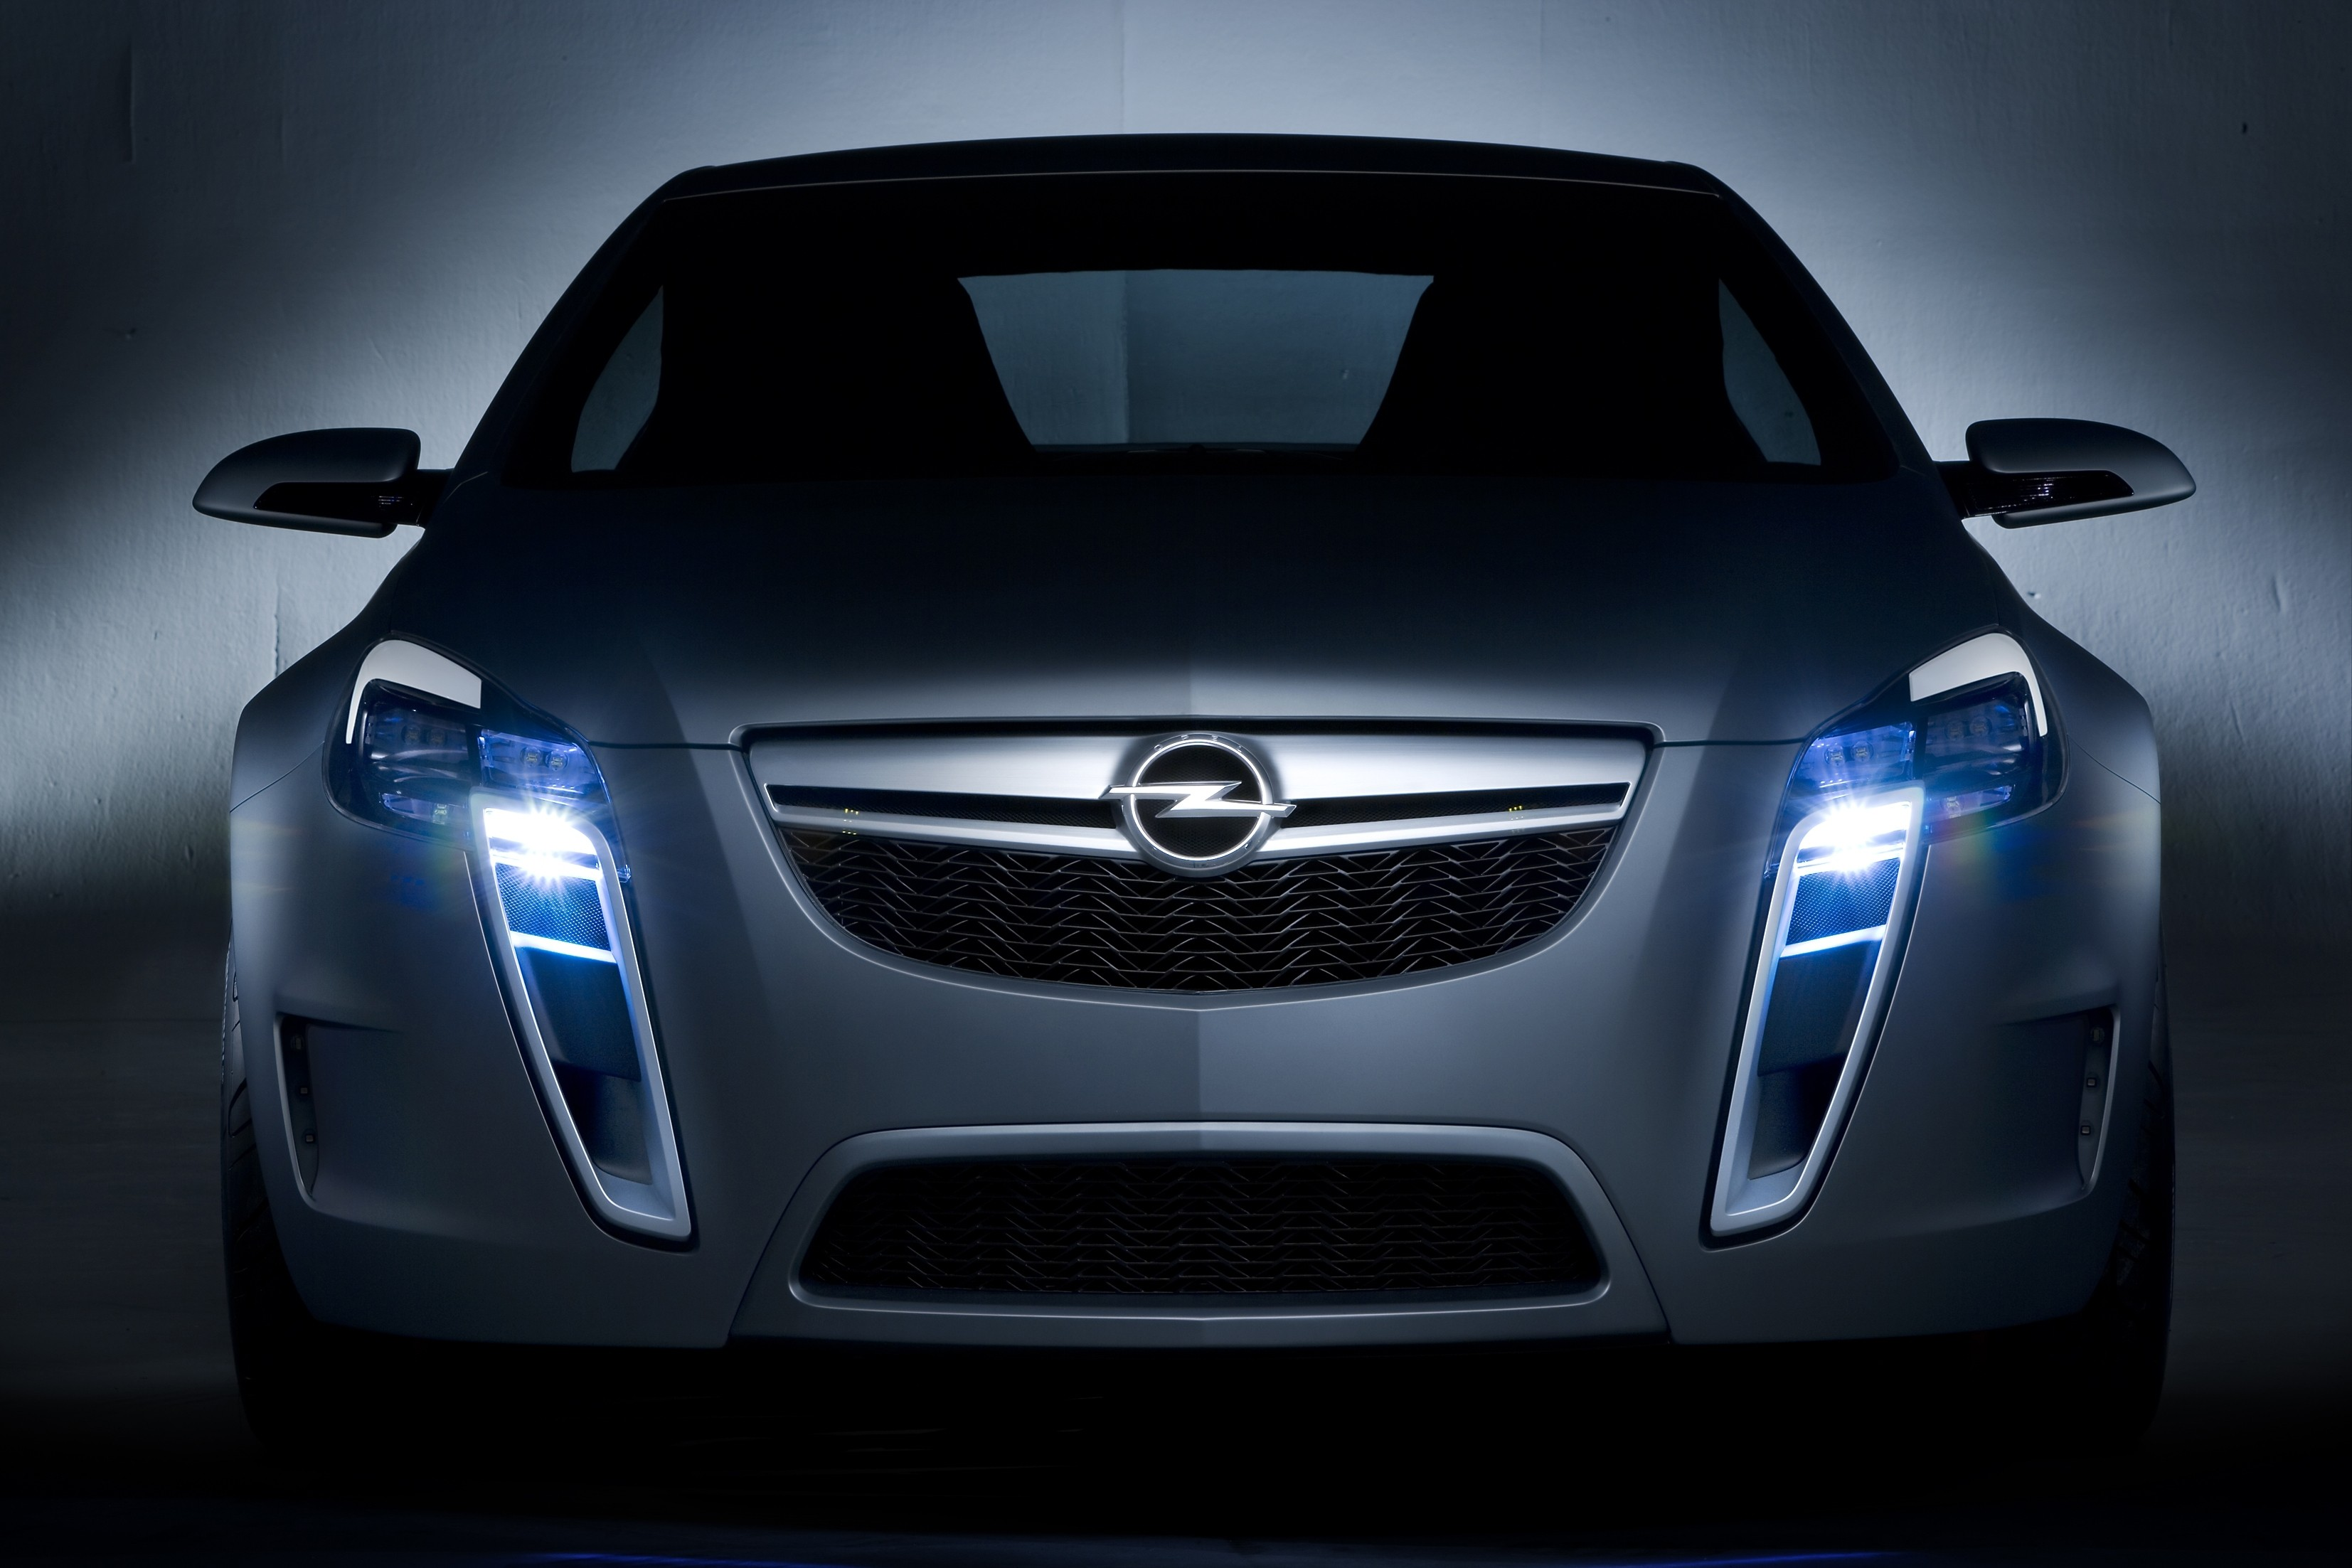 Car Leds: Opel Full HD Wallpaper And Background Image